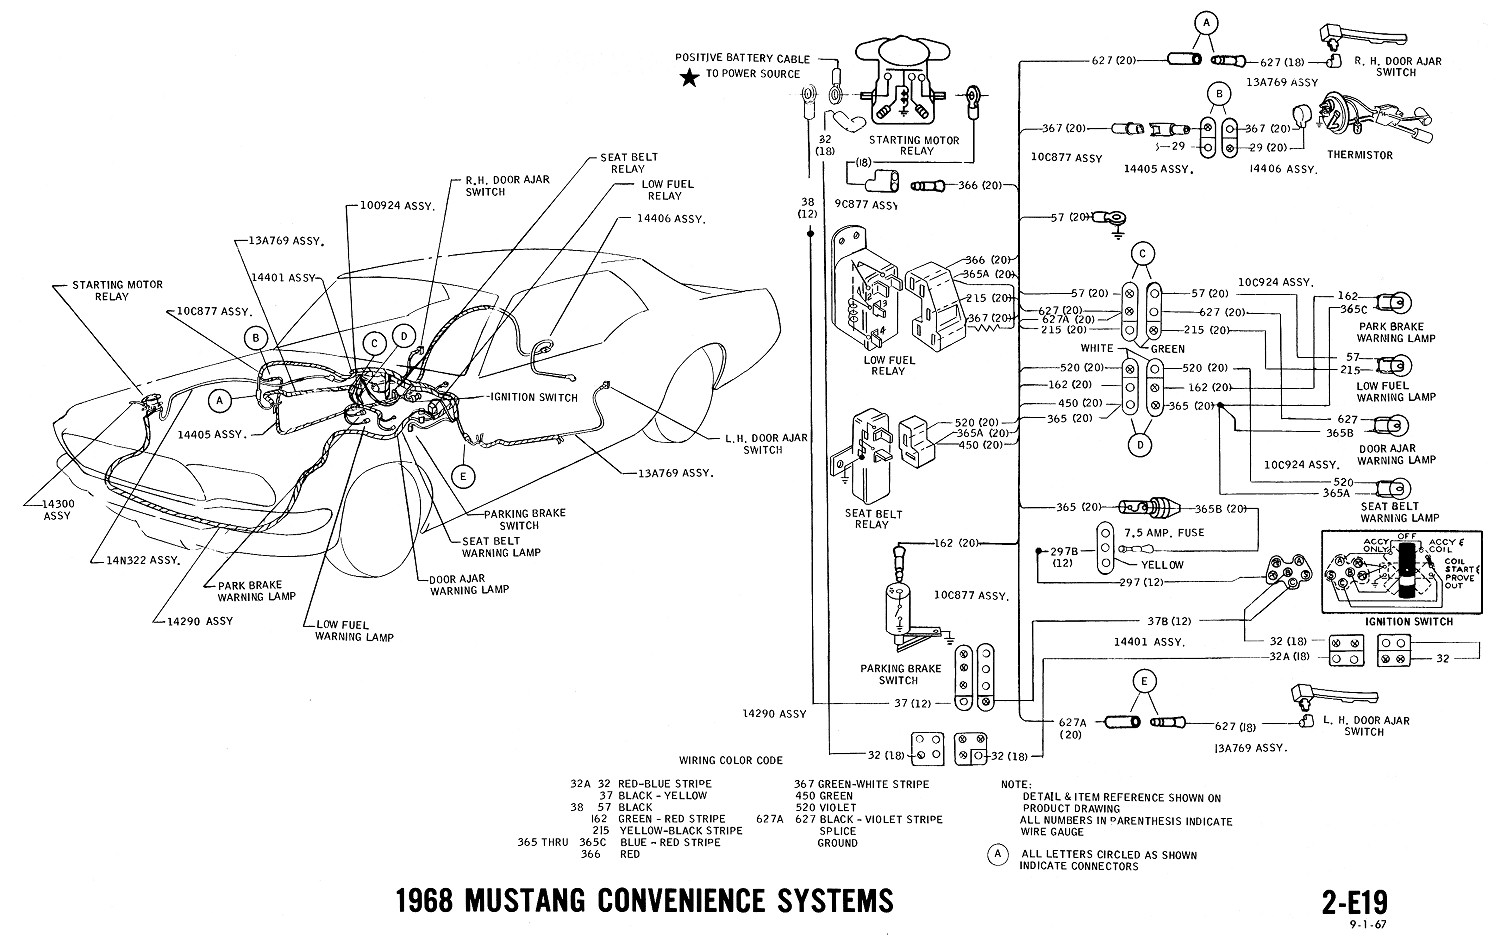 E19 1968 mustang wiring diagrams evolving software ford mustang wiring diagram at gsmx.co